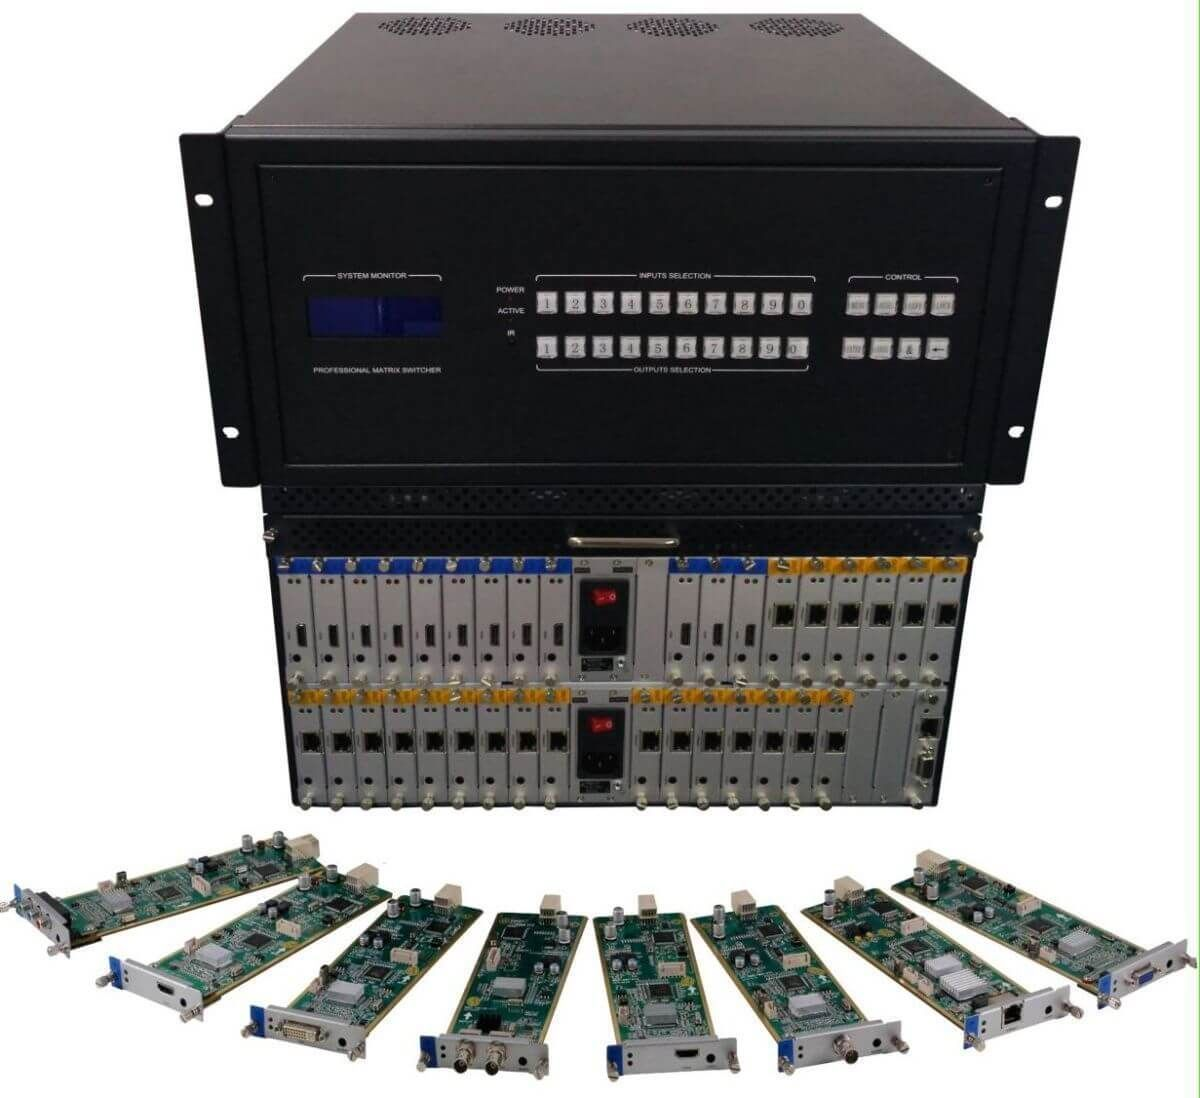 10x24 HDMI Matrix Switcher with Video Wall Processor